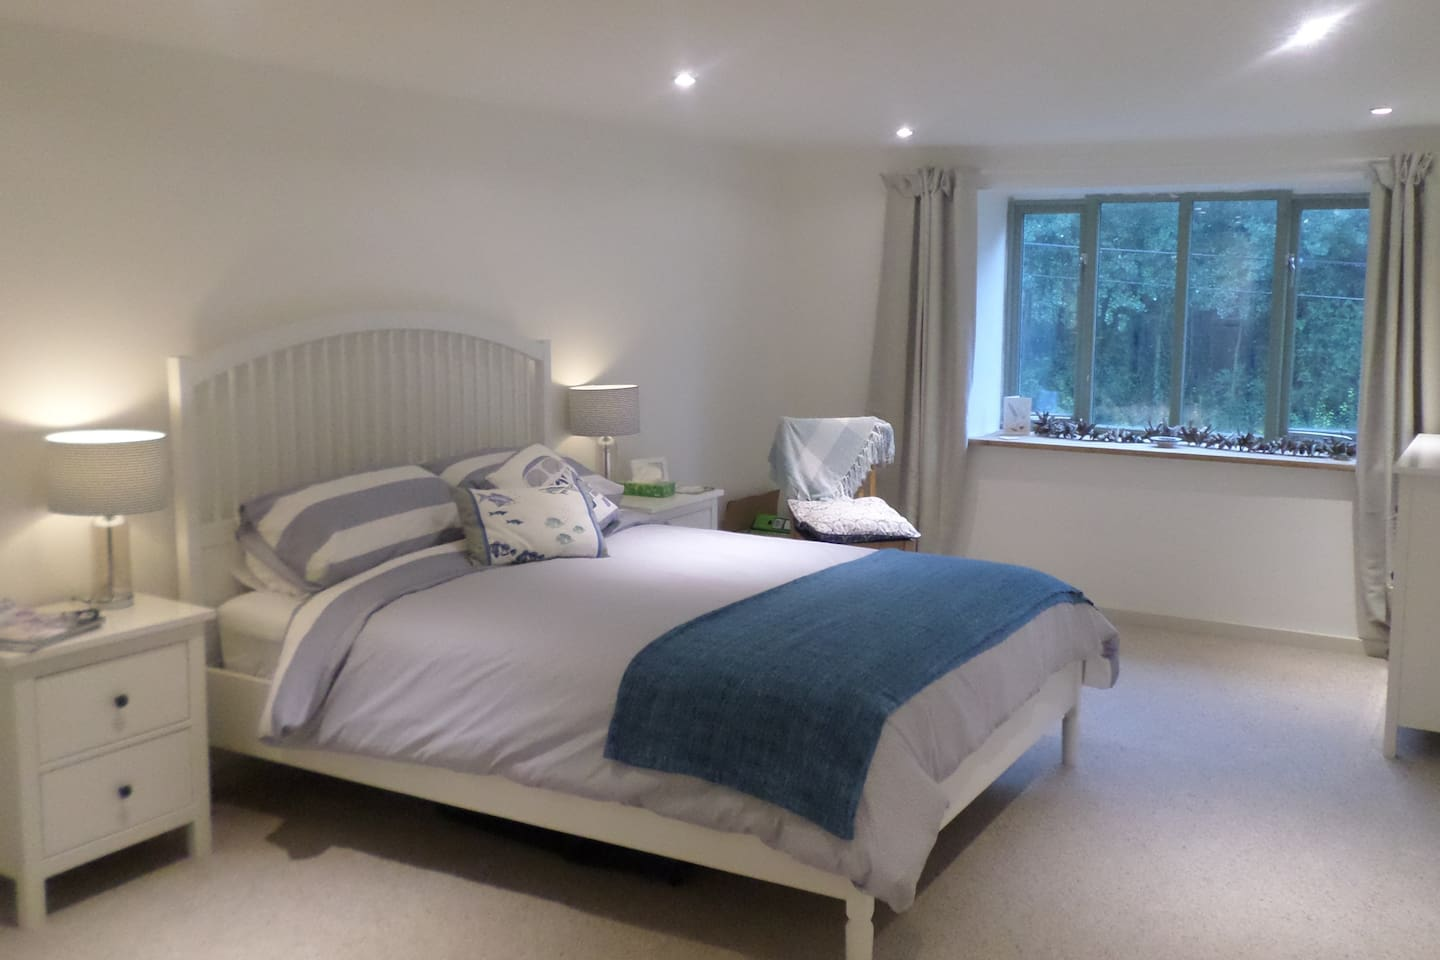 Kingsize bed in large spacious room with lovely rural views, spare double mattress also available